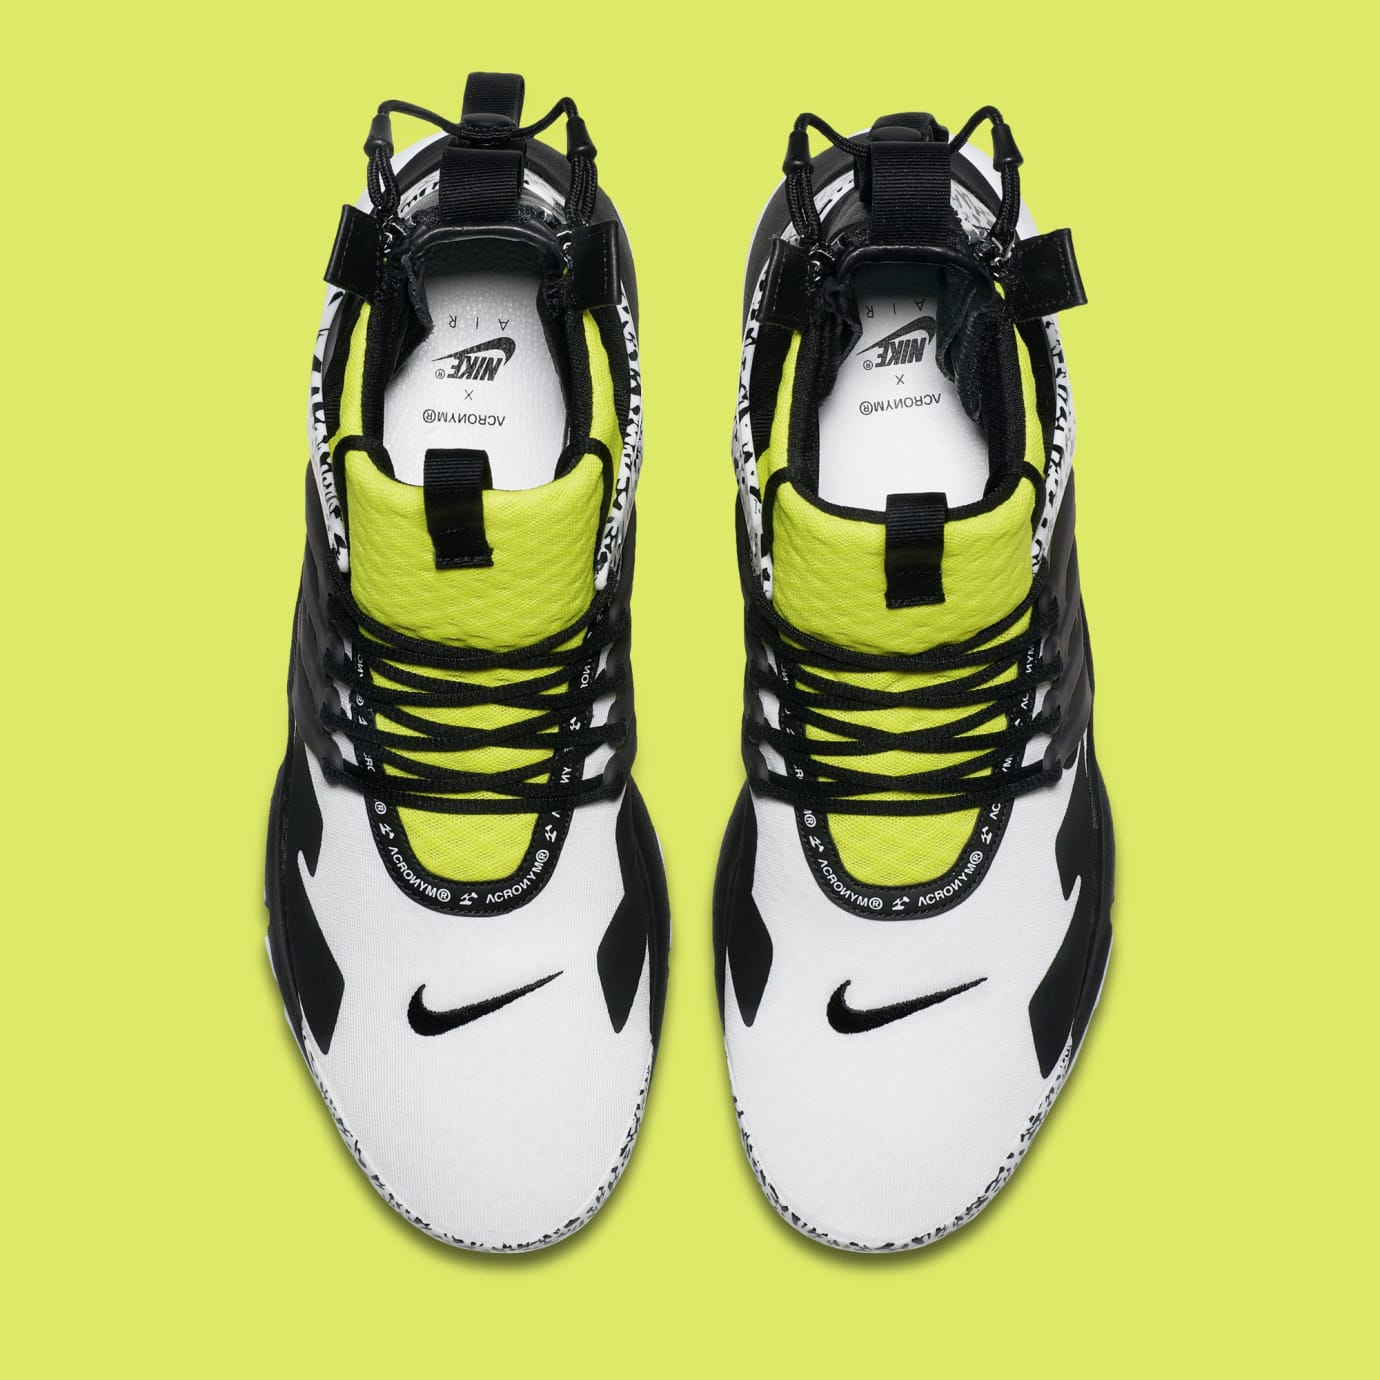 19cb3a21b2f2c3 Image via Nike Acronym x Nike Air Presto Mid  White Dynamic Yellow Black   AH7832-